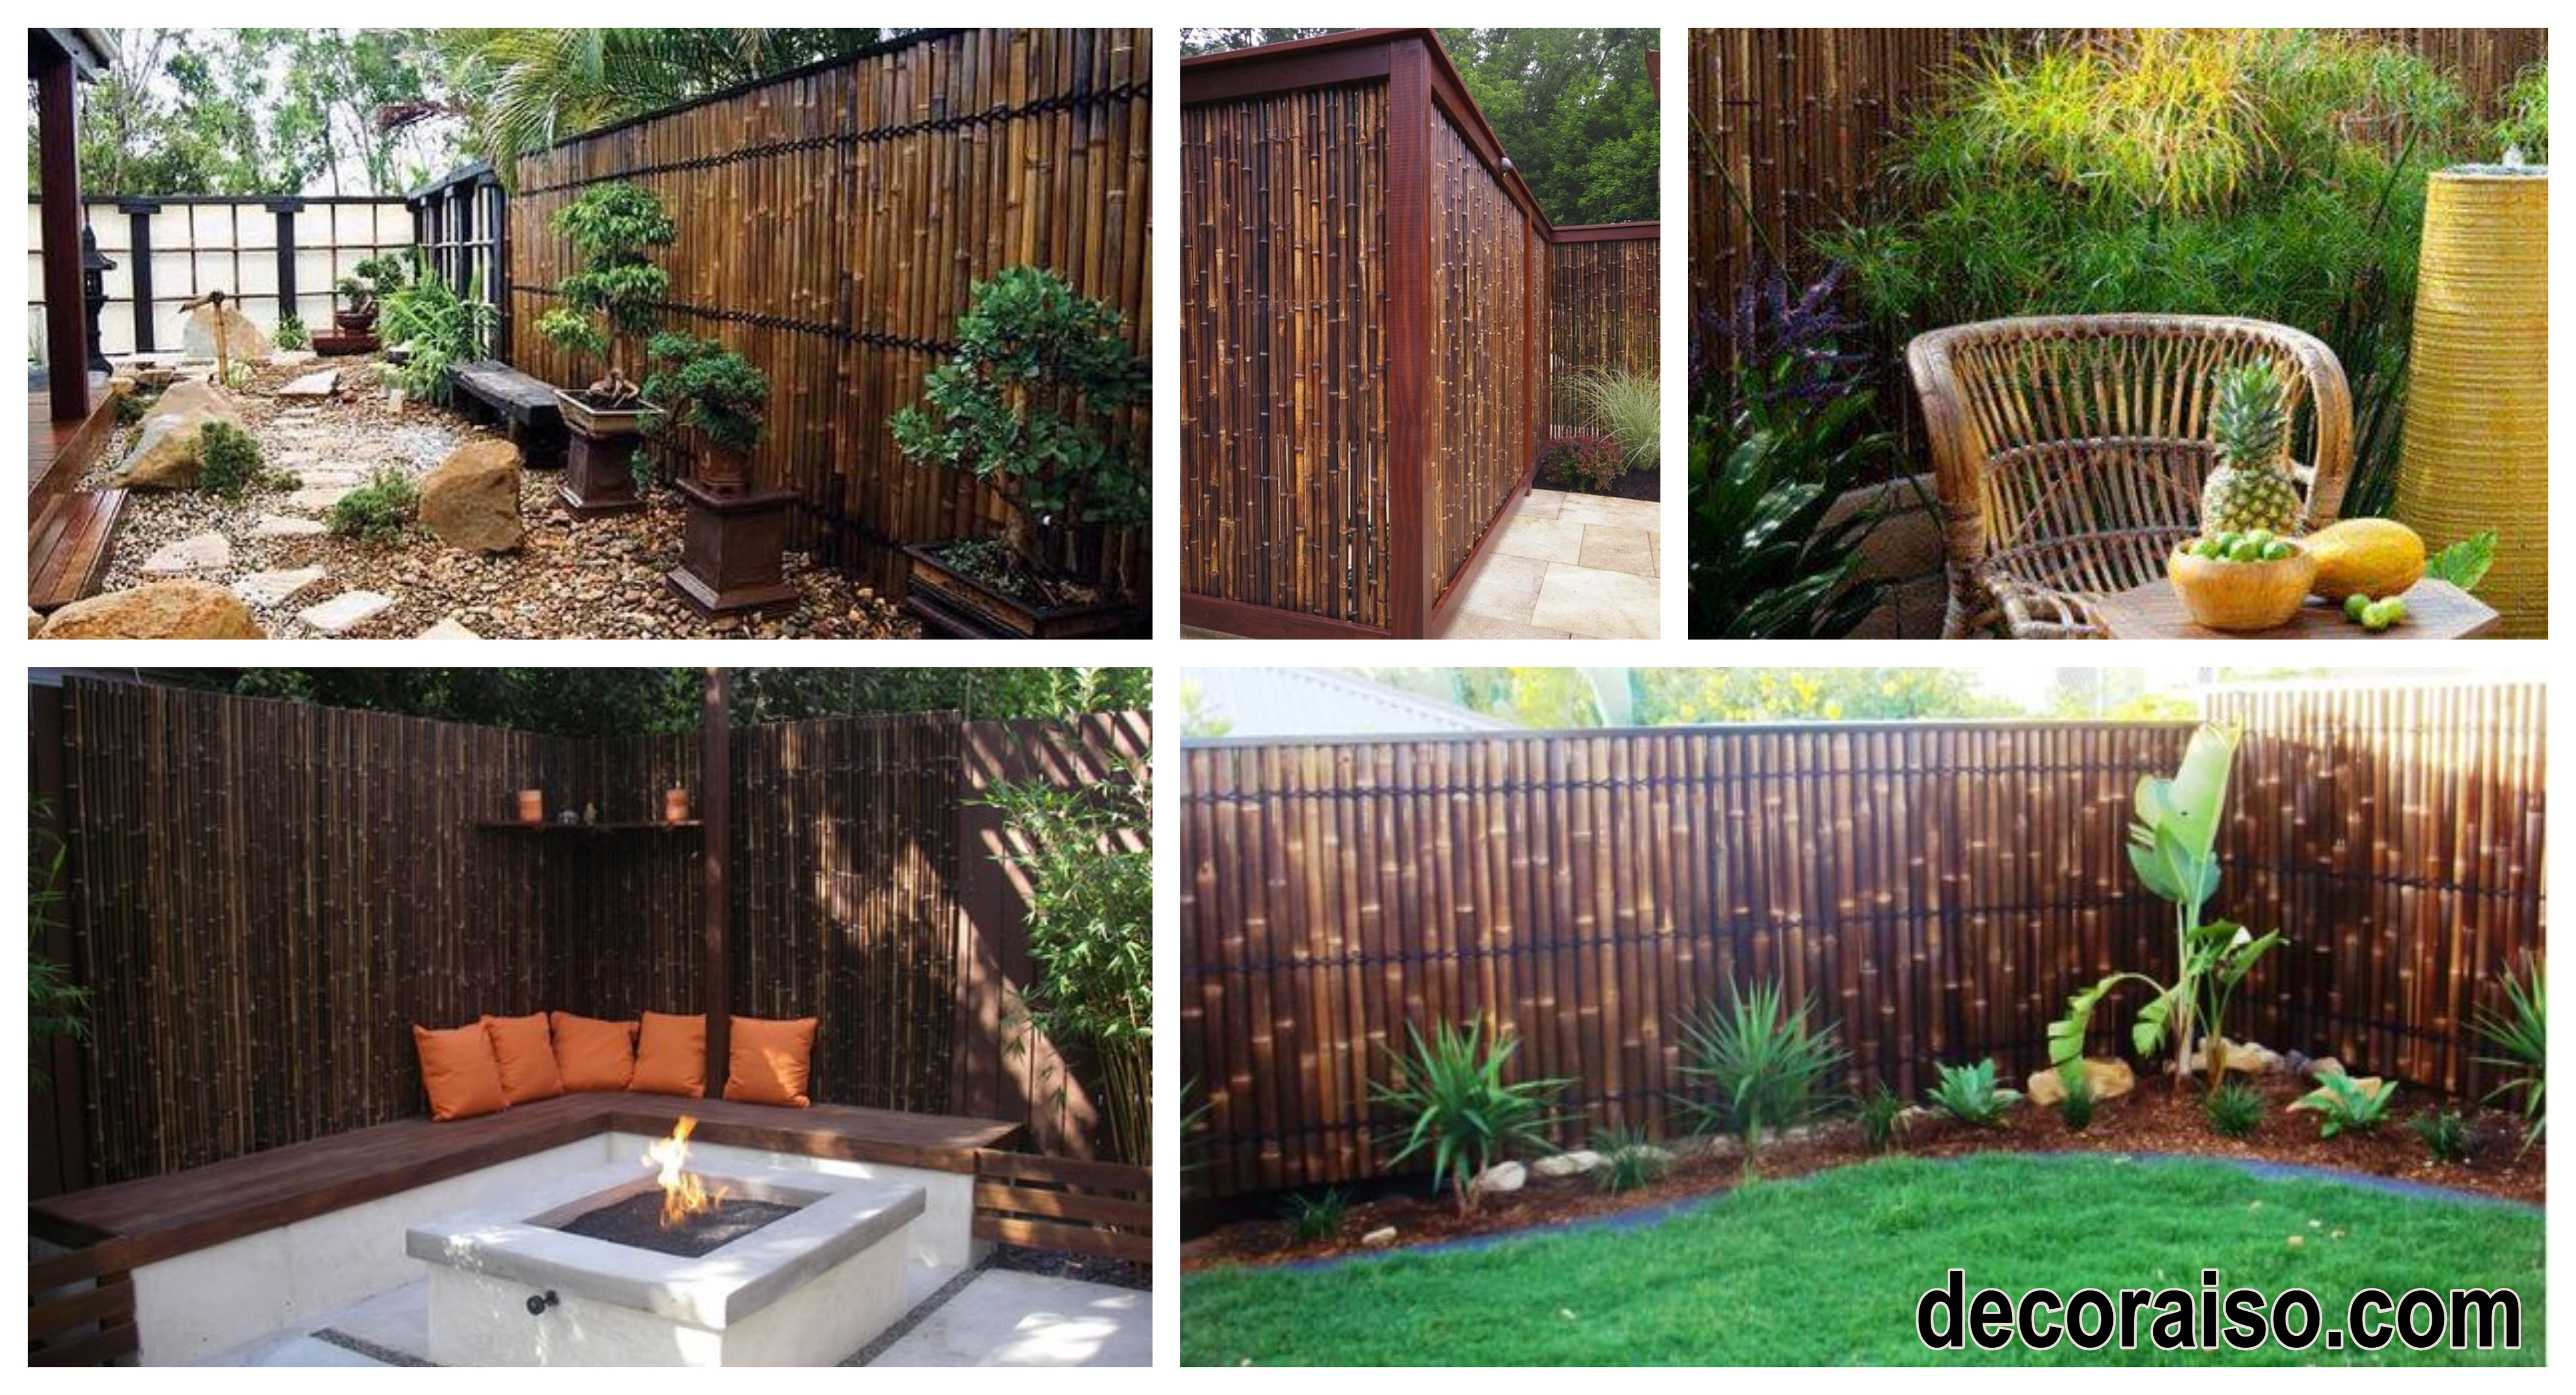 44 Modern Privacy Fence Ideas For Backyard Decoraiso with regard to 16 Awesome Concepts of How to Upgrade Privacy Fence Ideas For Backyard